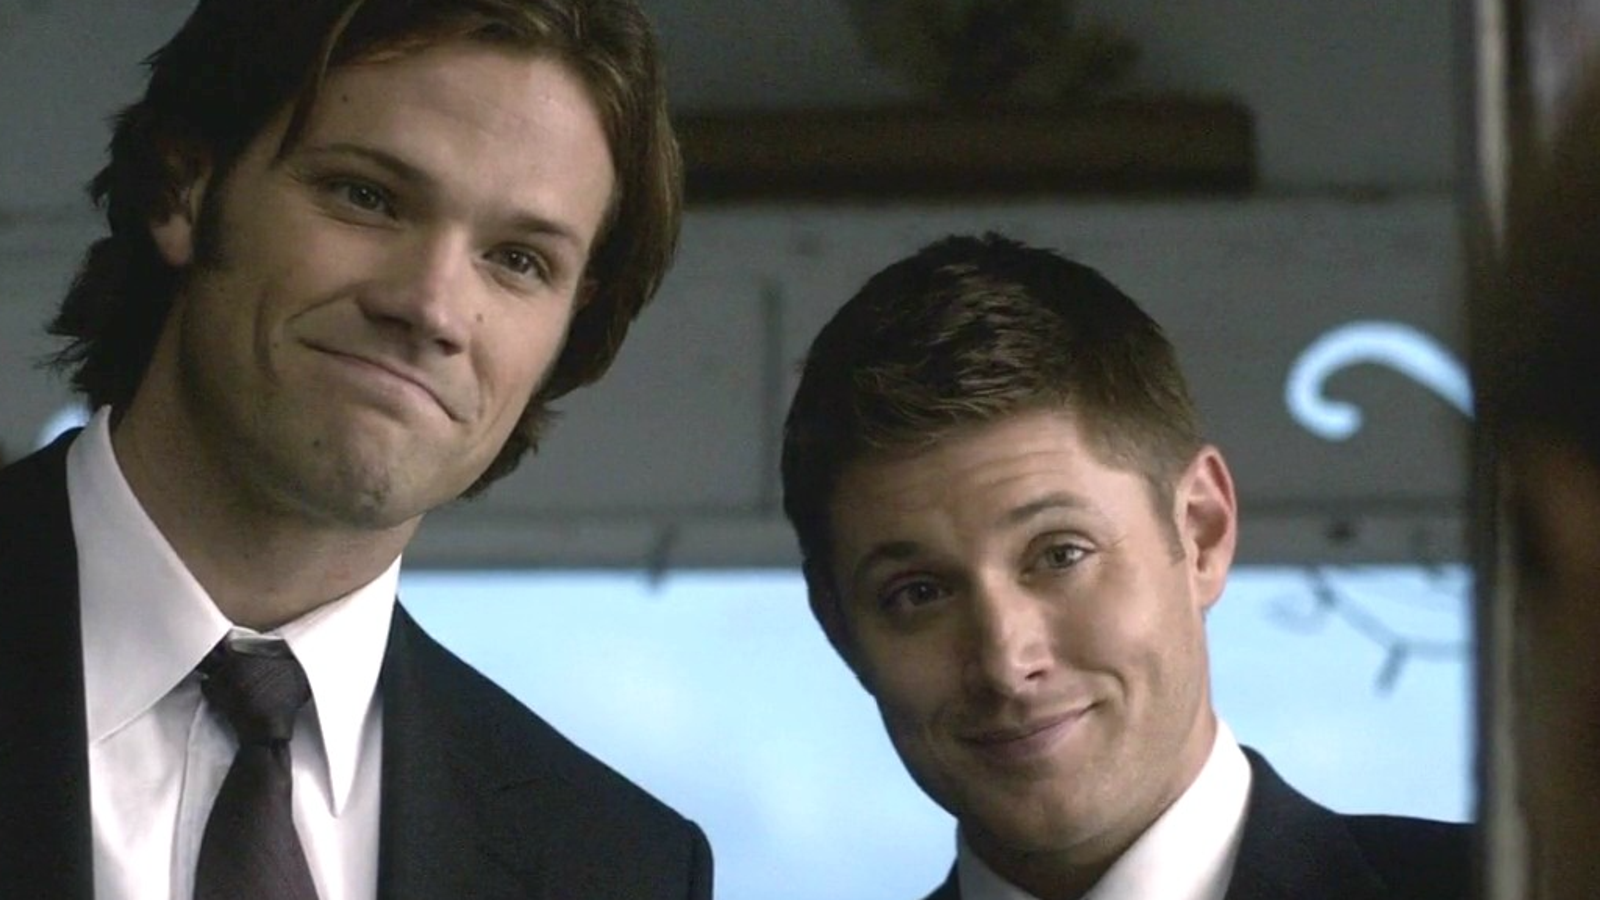 Why Does Supernatural Have So Many Female Fans?